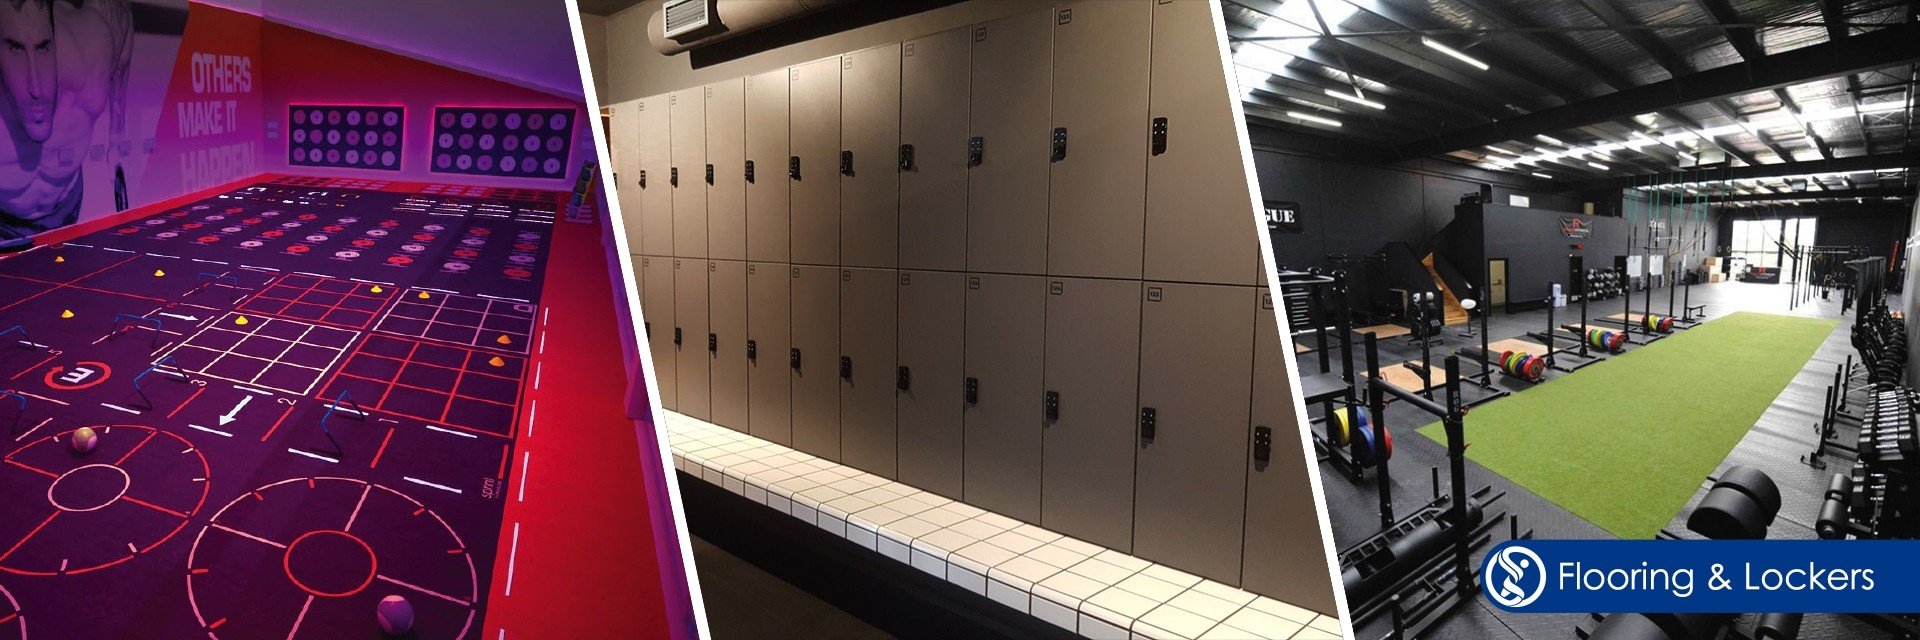 Flooring and Lockers